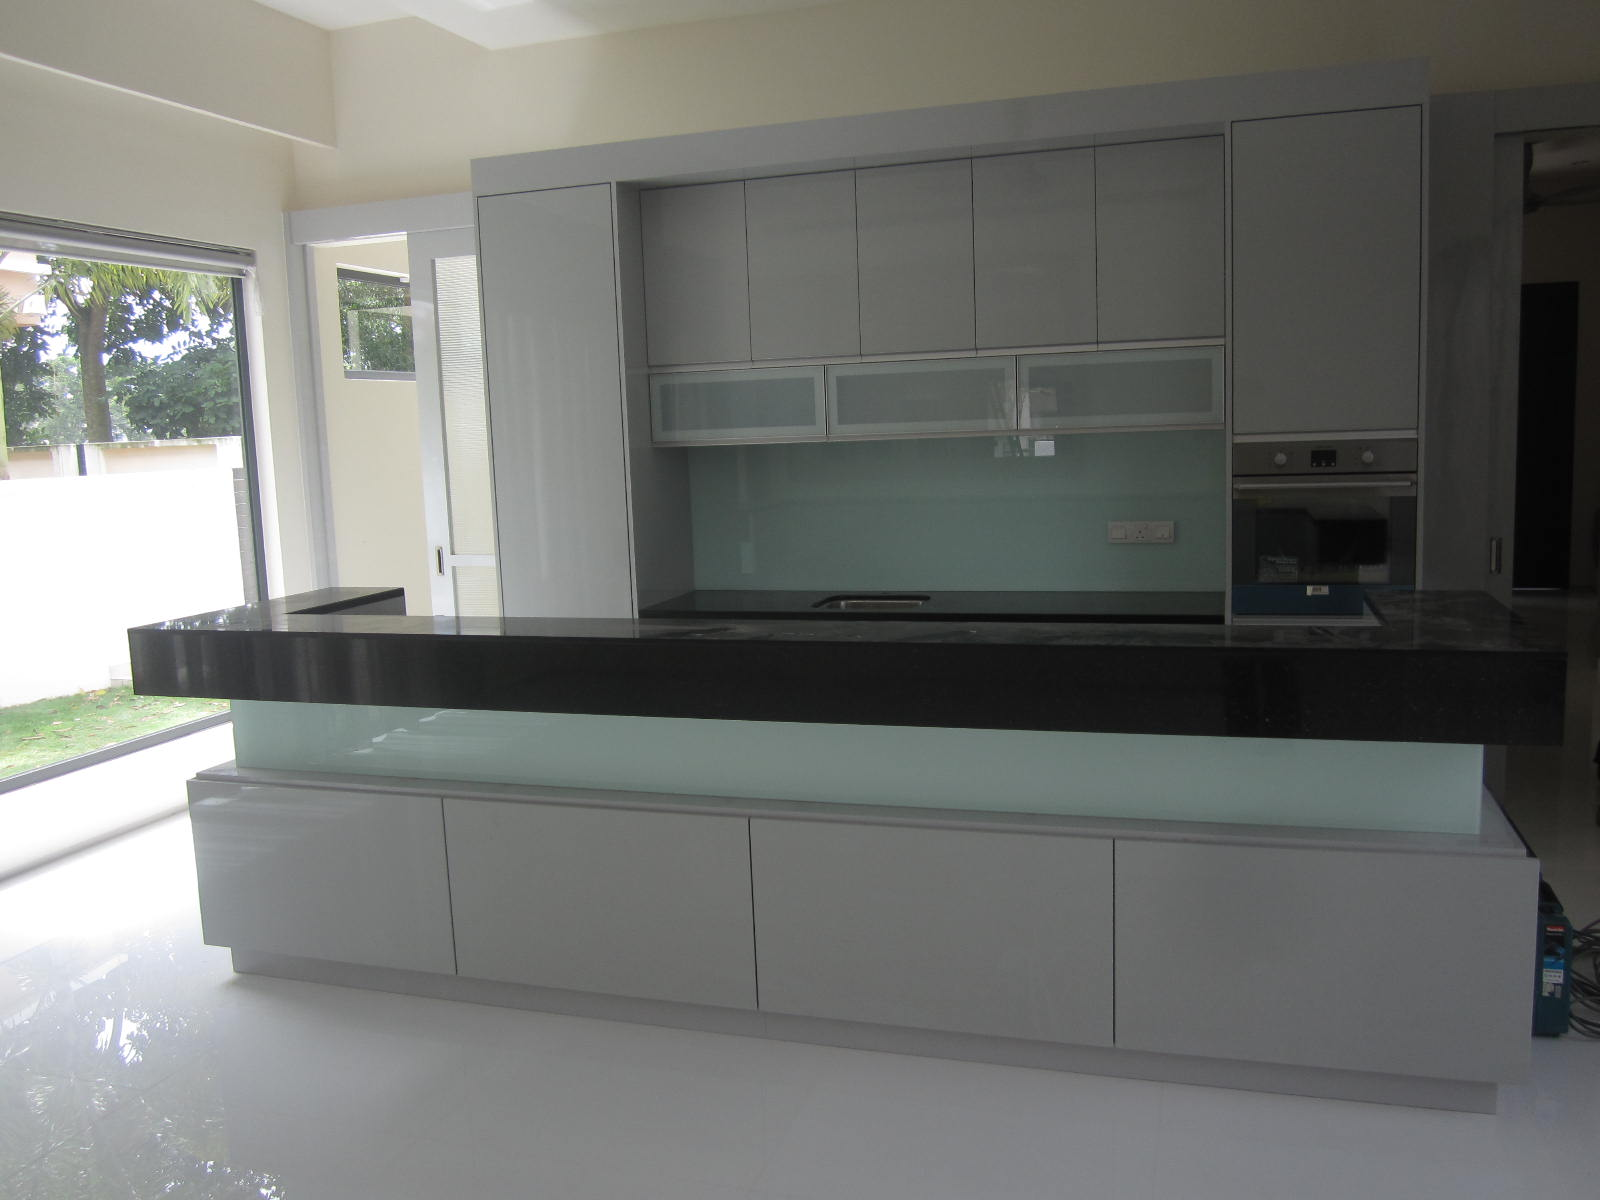 Wonderful Modern High Gloss White Kitchen Cabinets 1600 x 1200 · 120 kB · jpeg